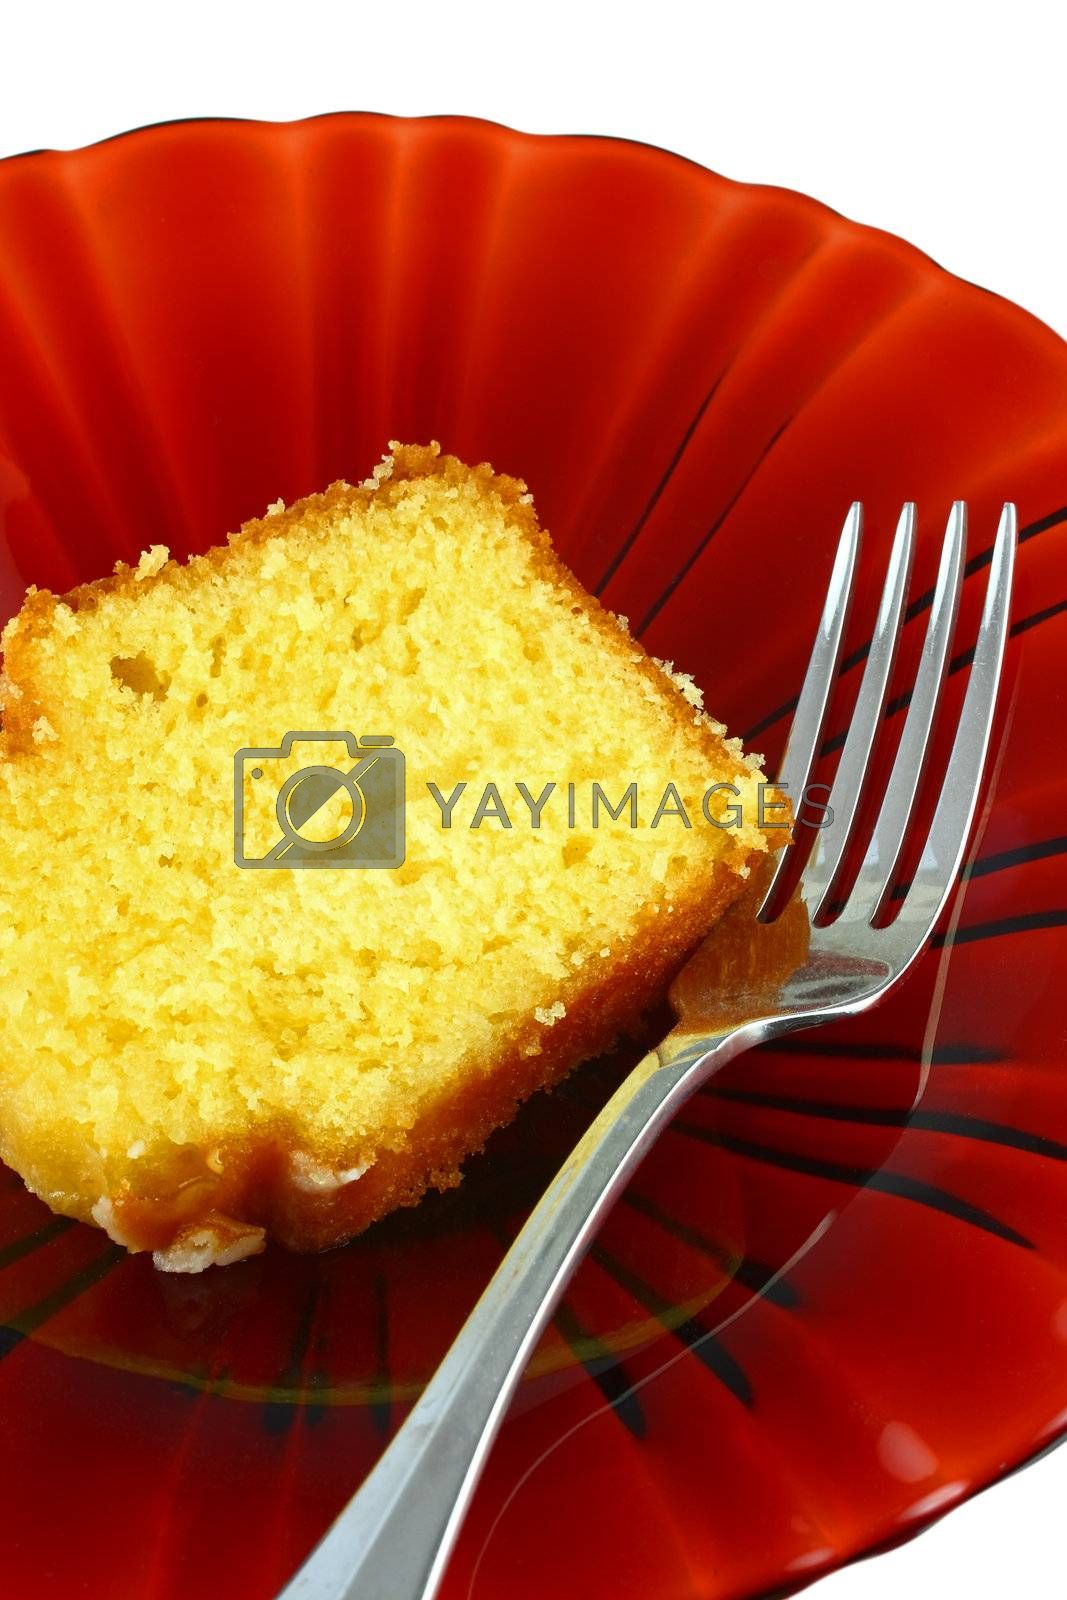 Slice of cake with fork